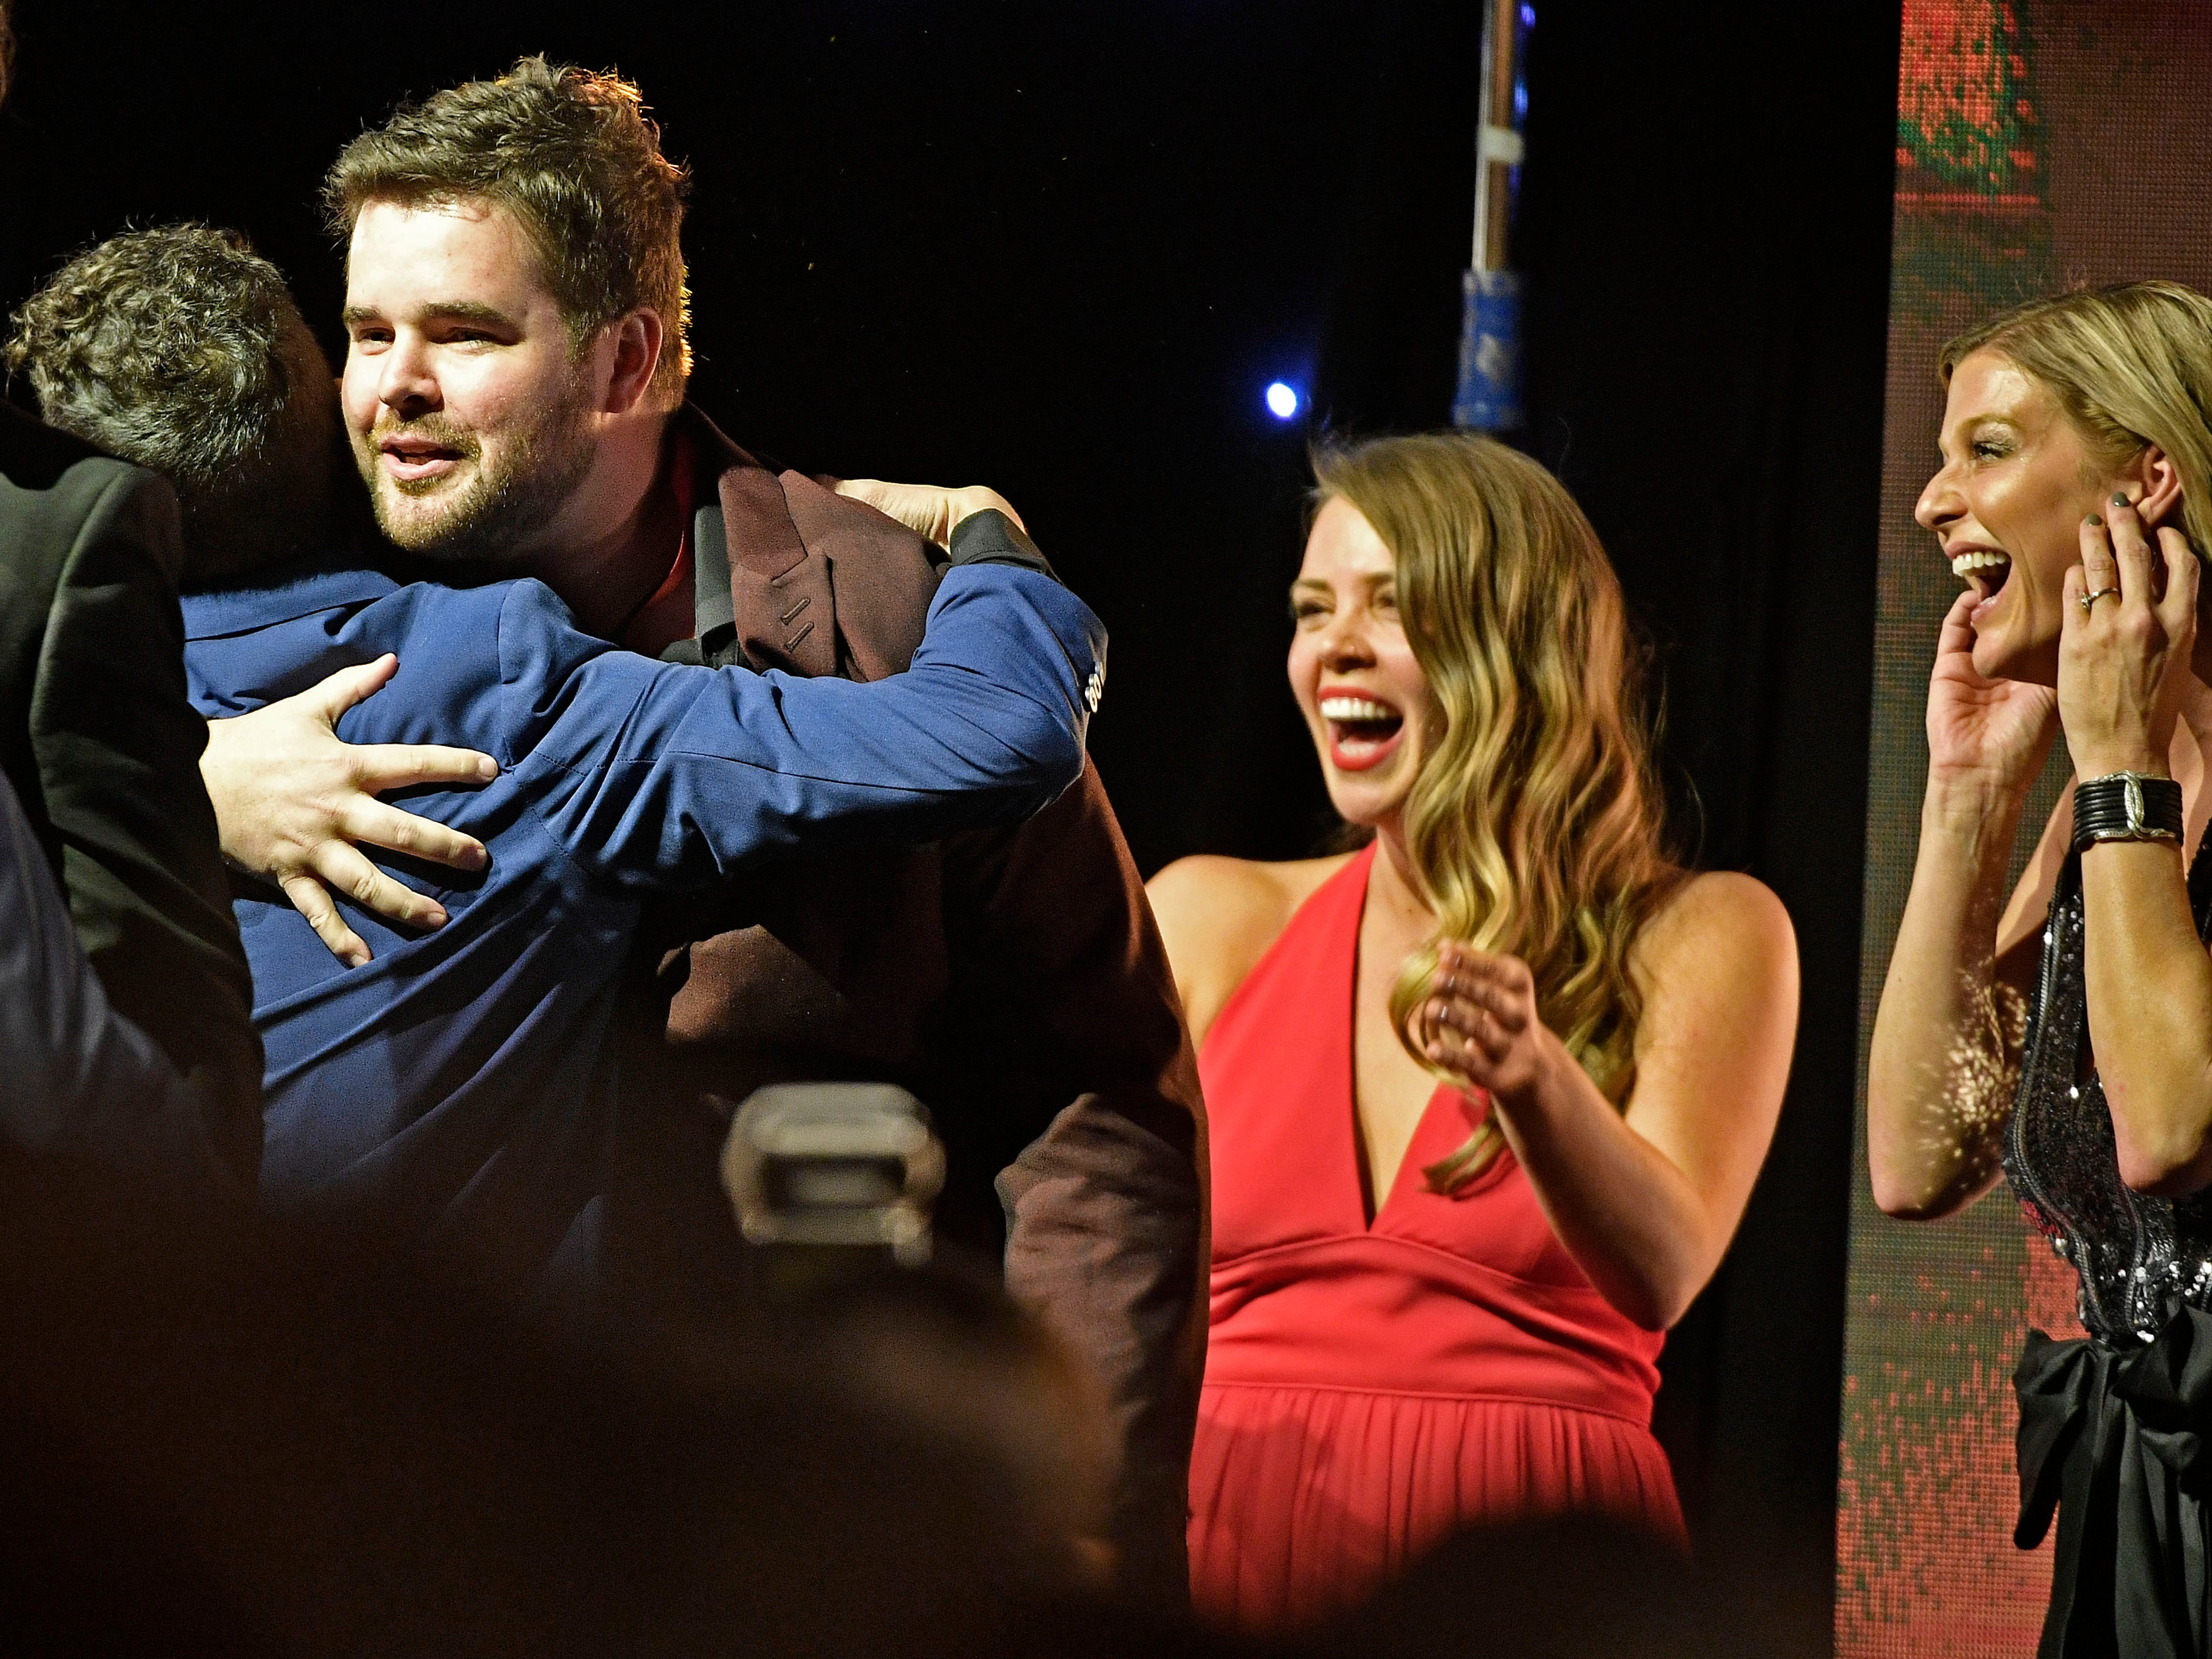 Matt McGinn is congratulated after being named Songwriter of the Year at the SESAC Nashville Music Awards at the Country Music Hall of Fame and Museum Sunday Nov. 11, 2018, in Nashville, Tenn.